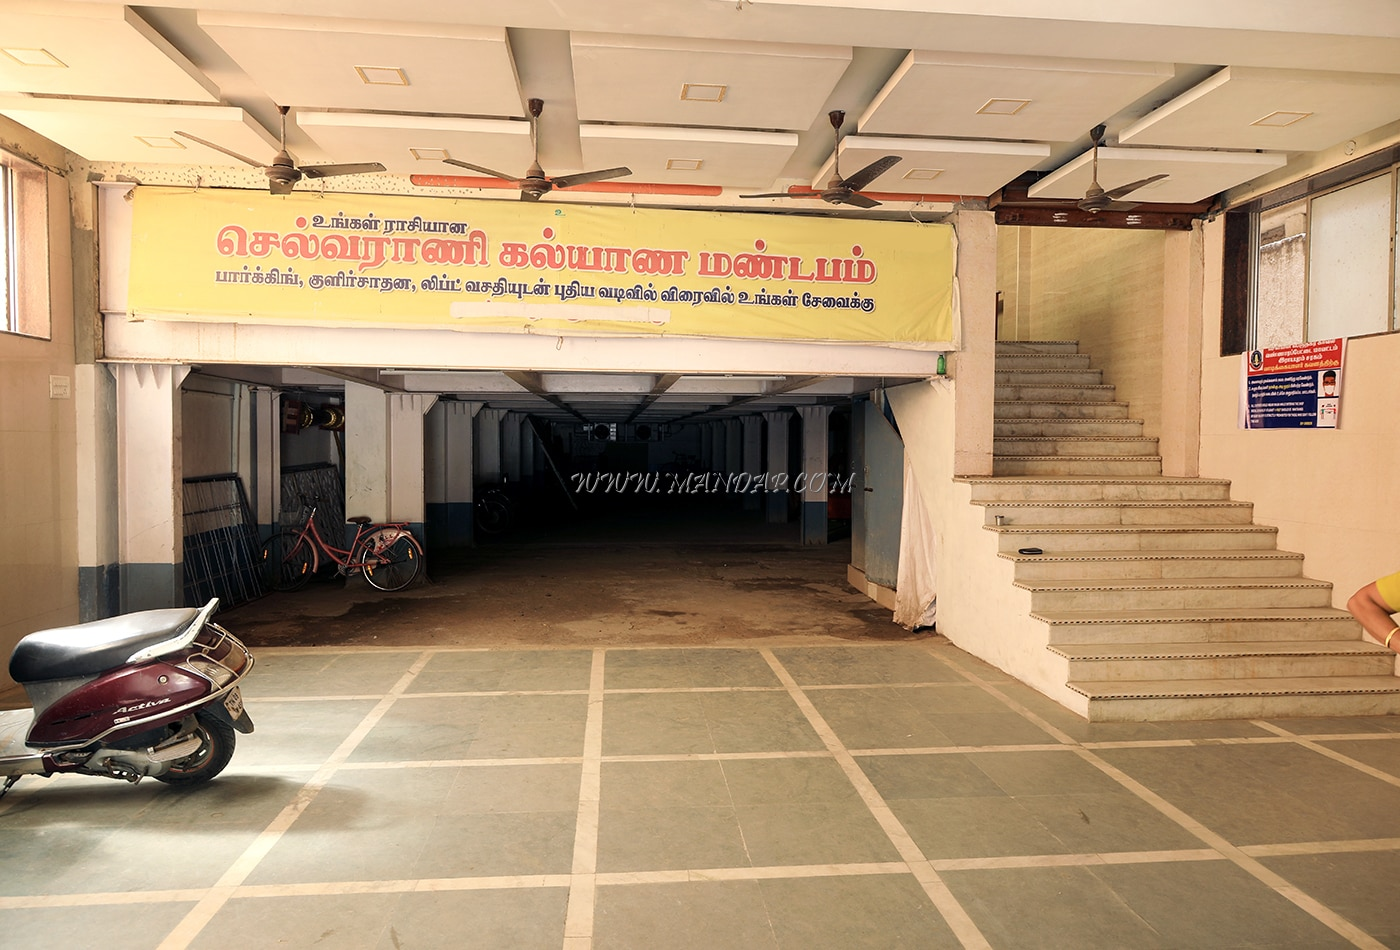 Find the availability of the Selvarani Kalyana Mandapam (A/C) in Royapuram, Chennai and avail special offers